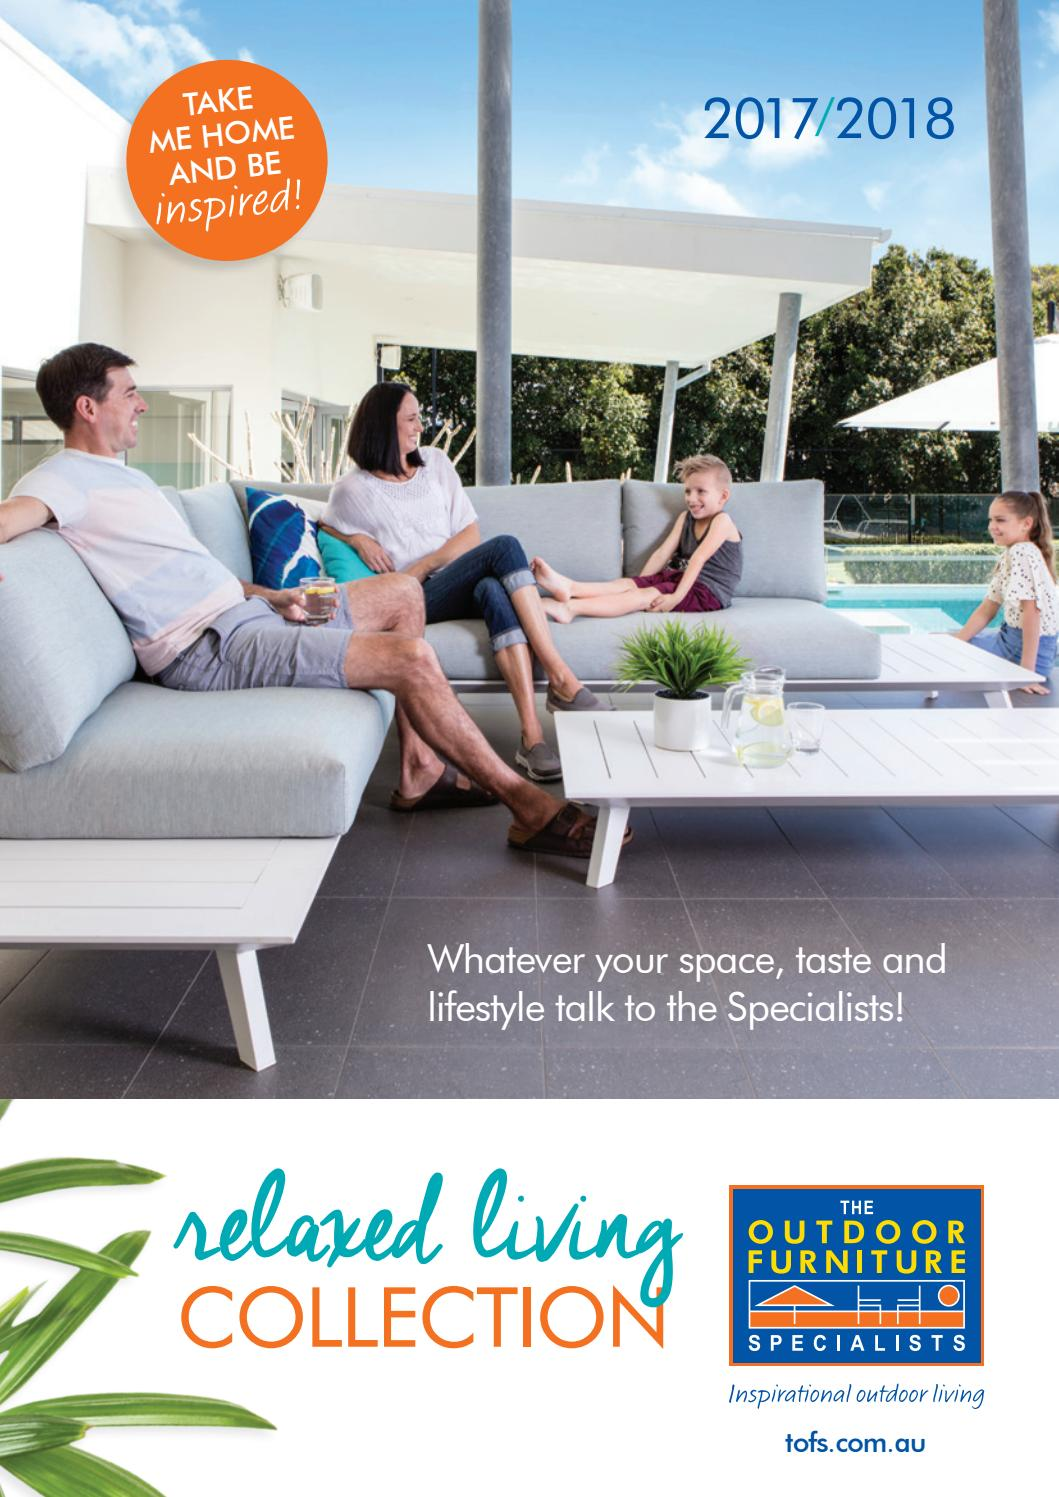 The outdoor furniture specialists relaxed living collection 2017 2018 by tofs the outdoor furniture specialists issuu